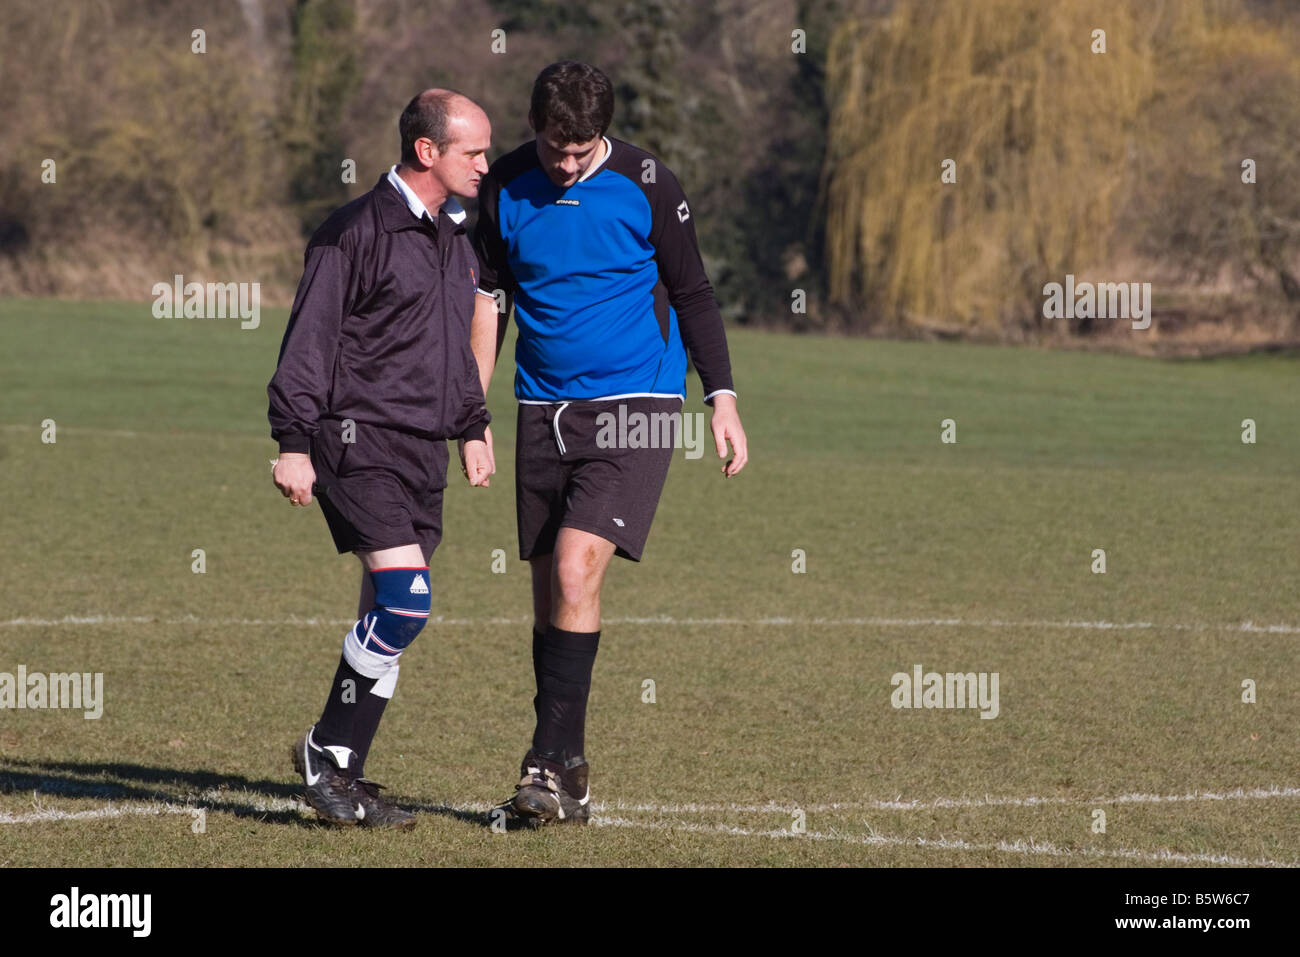 Amateur Football Match official Referee Warning a Player - Stock Image